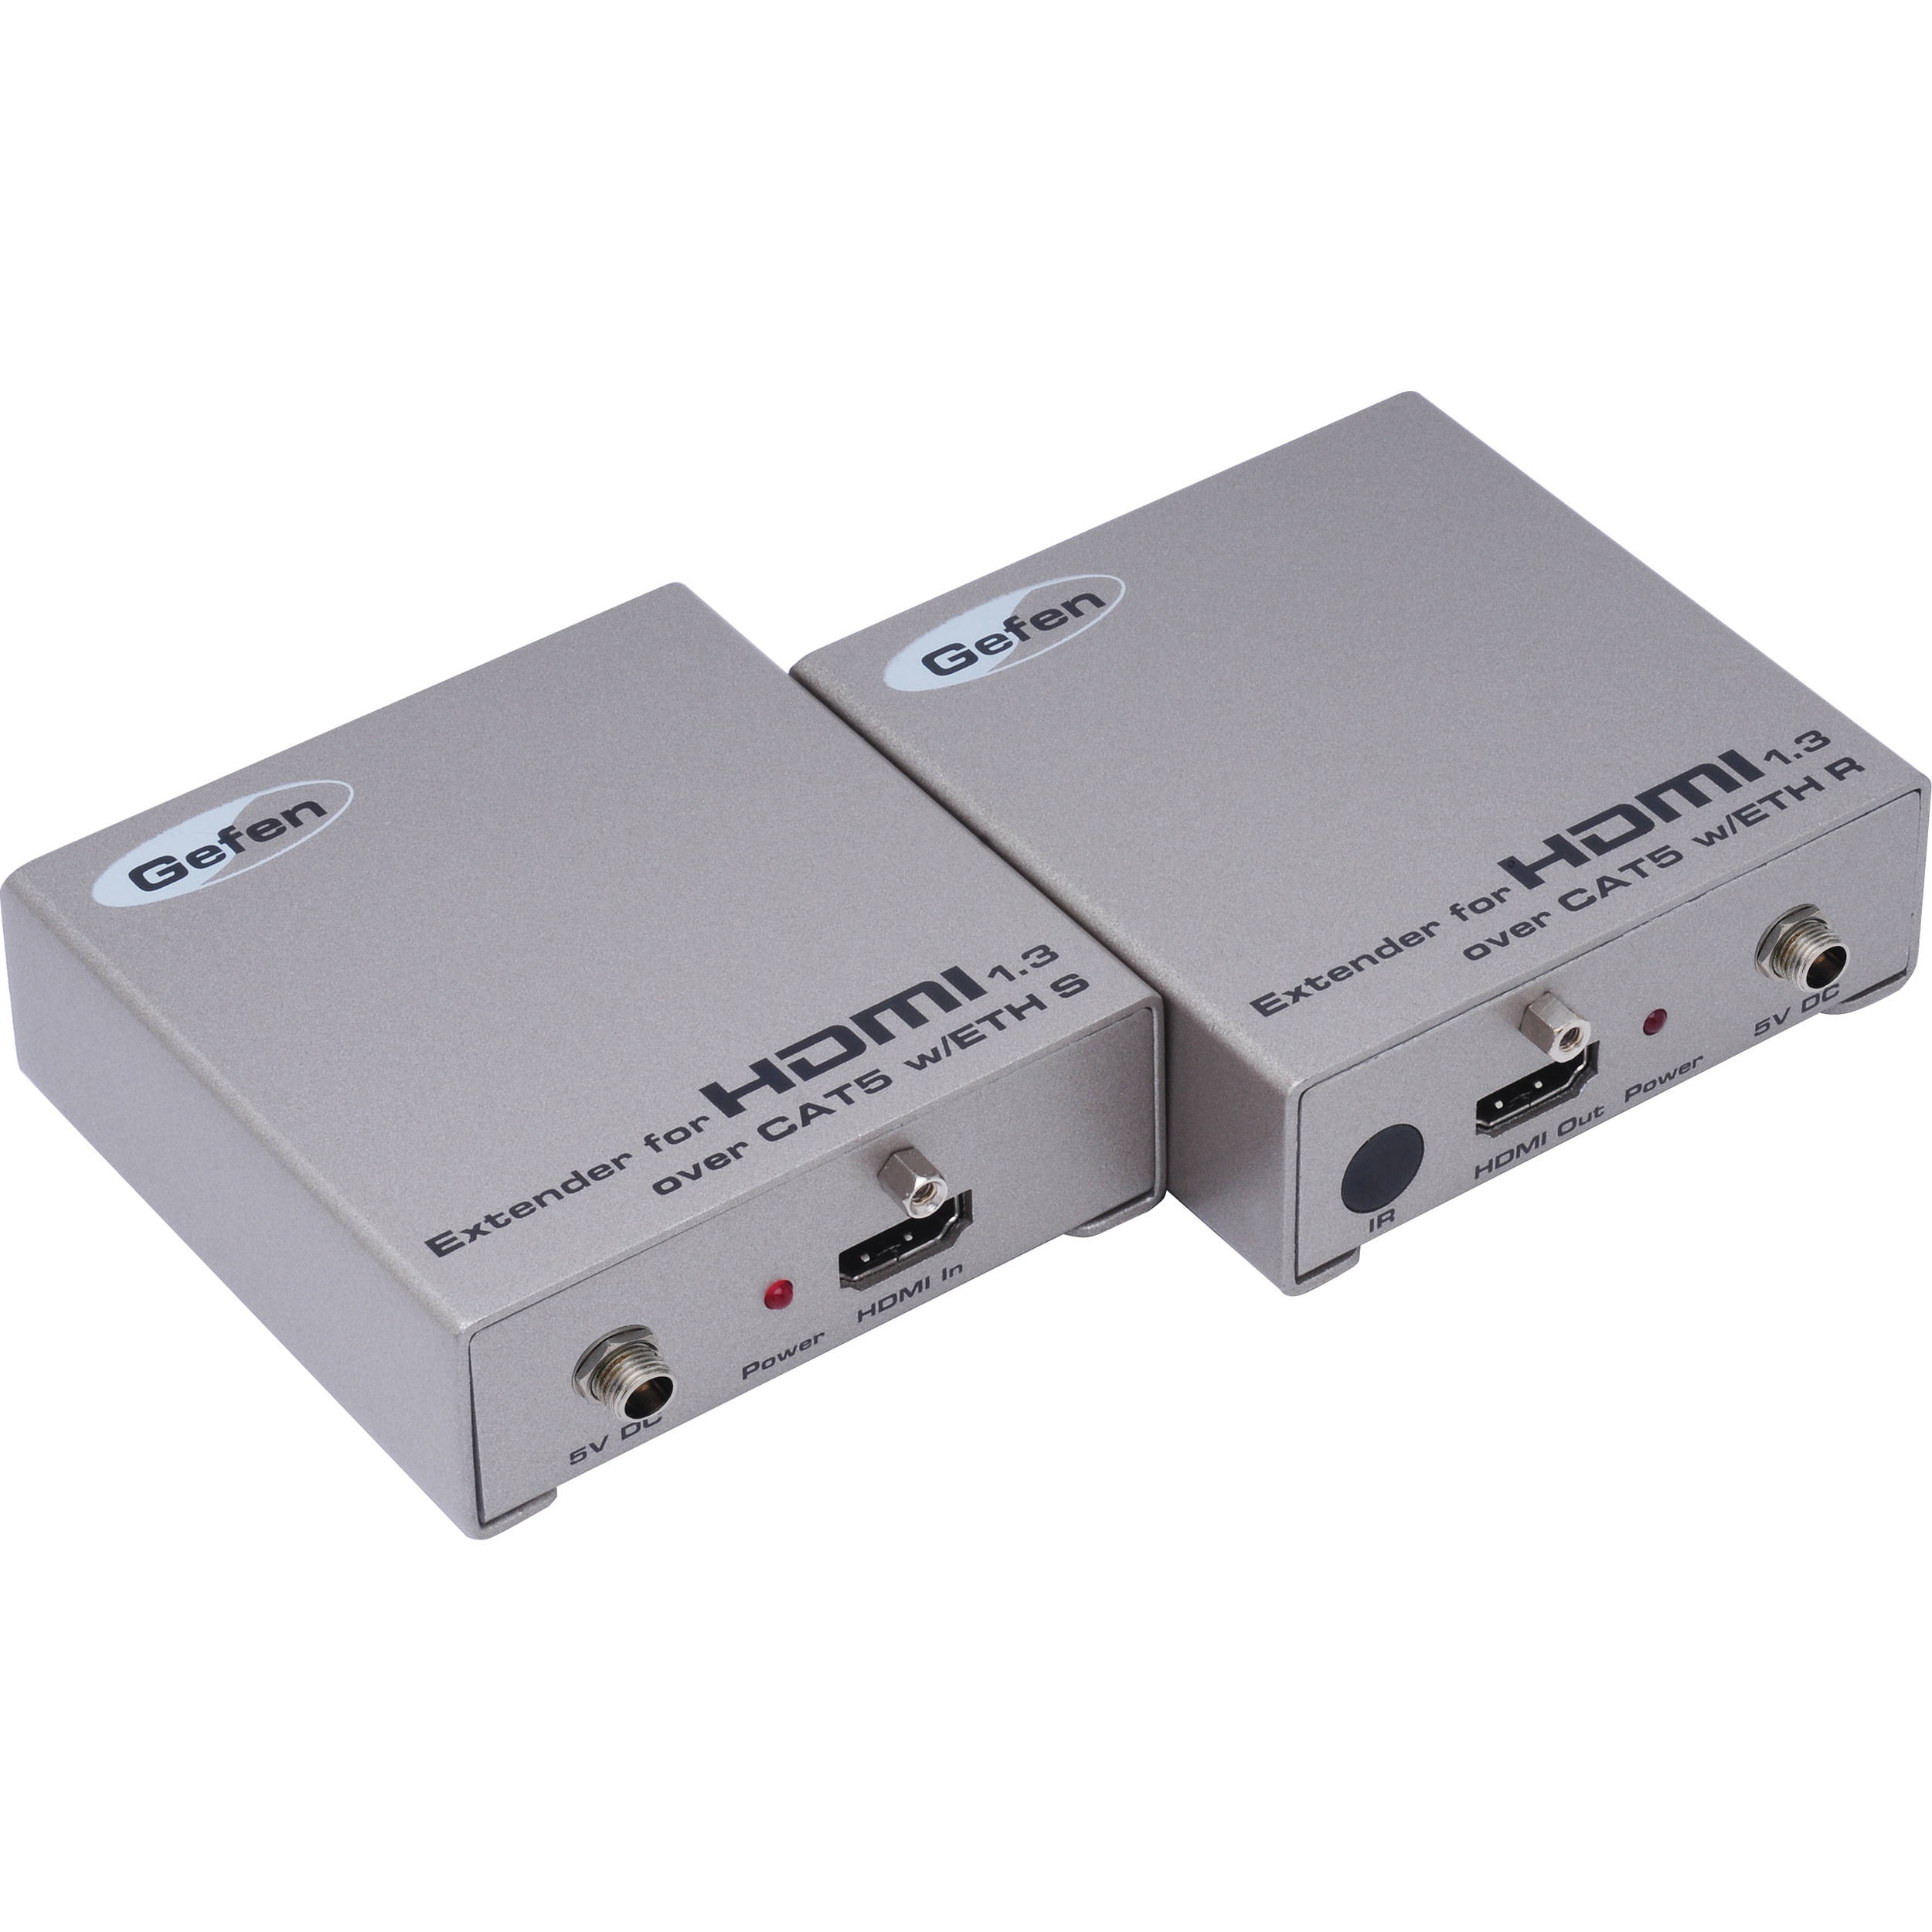 Cat 5 Cable Locator : Gefen extra long hdmi extender over cat ext elr